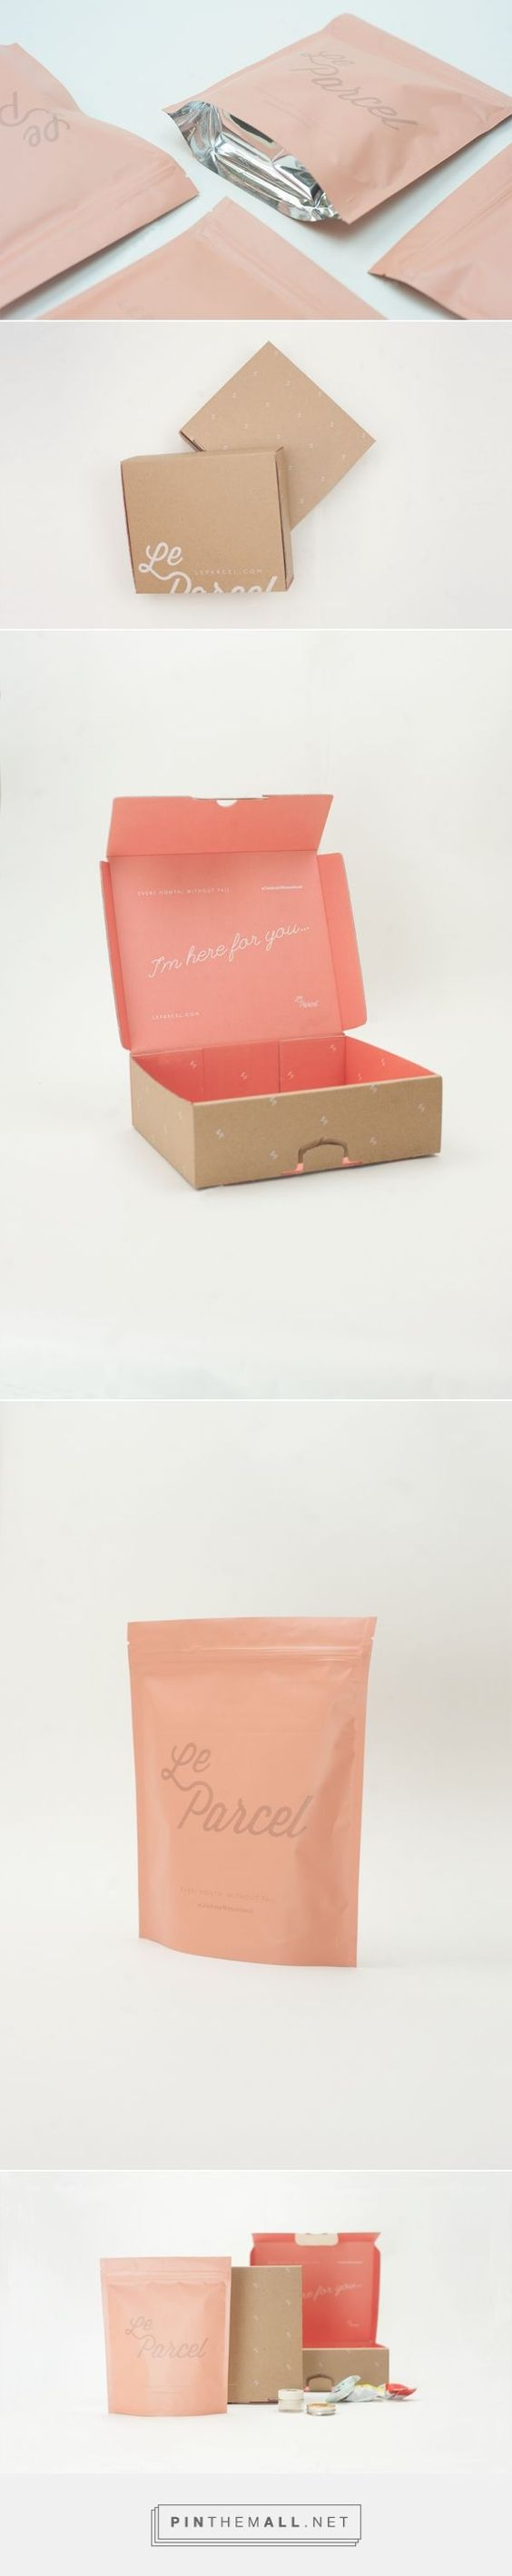 "Le Parcel Packaging System by Seven Fifty Five curated by Packaging Diva PD. Third in a series of packaging design systems a monthly delivery service for ""that time of the month"" includes a lighter-weight box, heat sealed bags, and a bright pink interior."